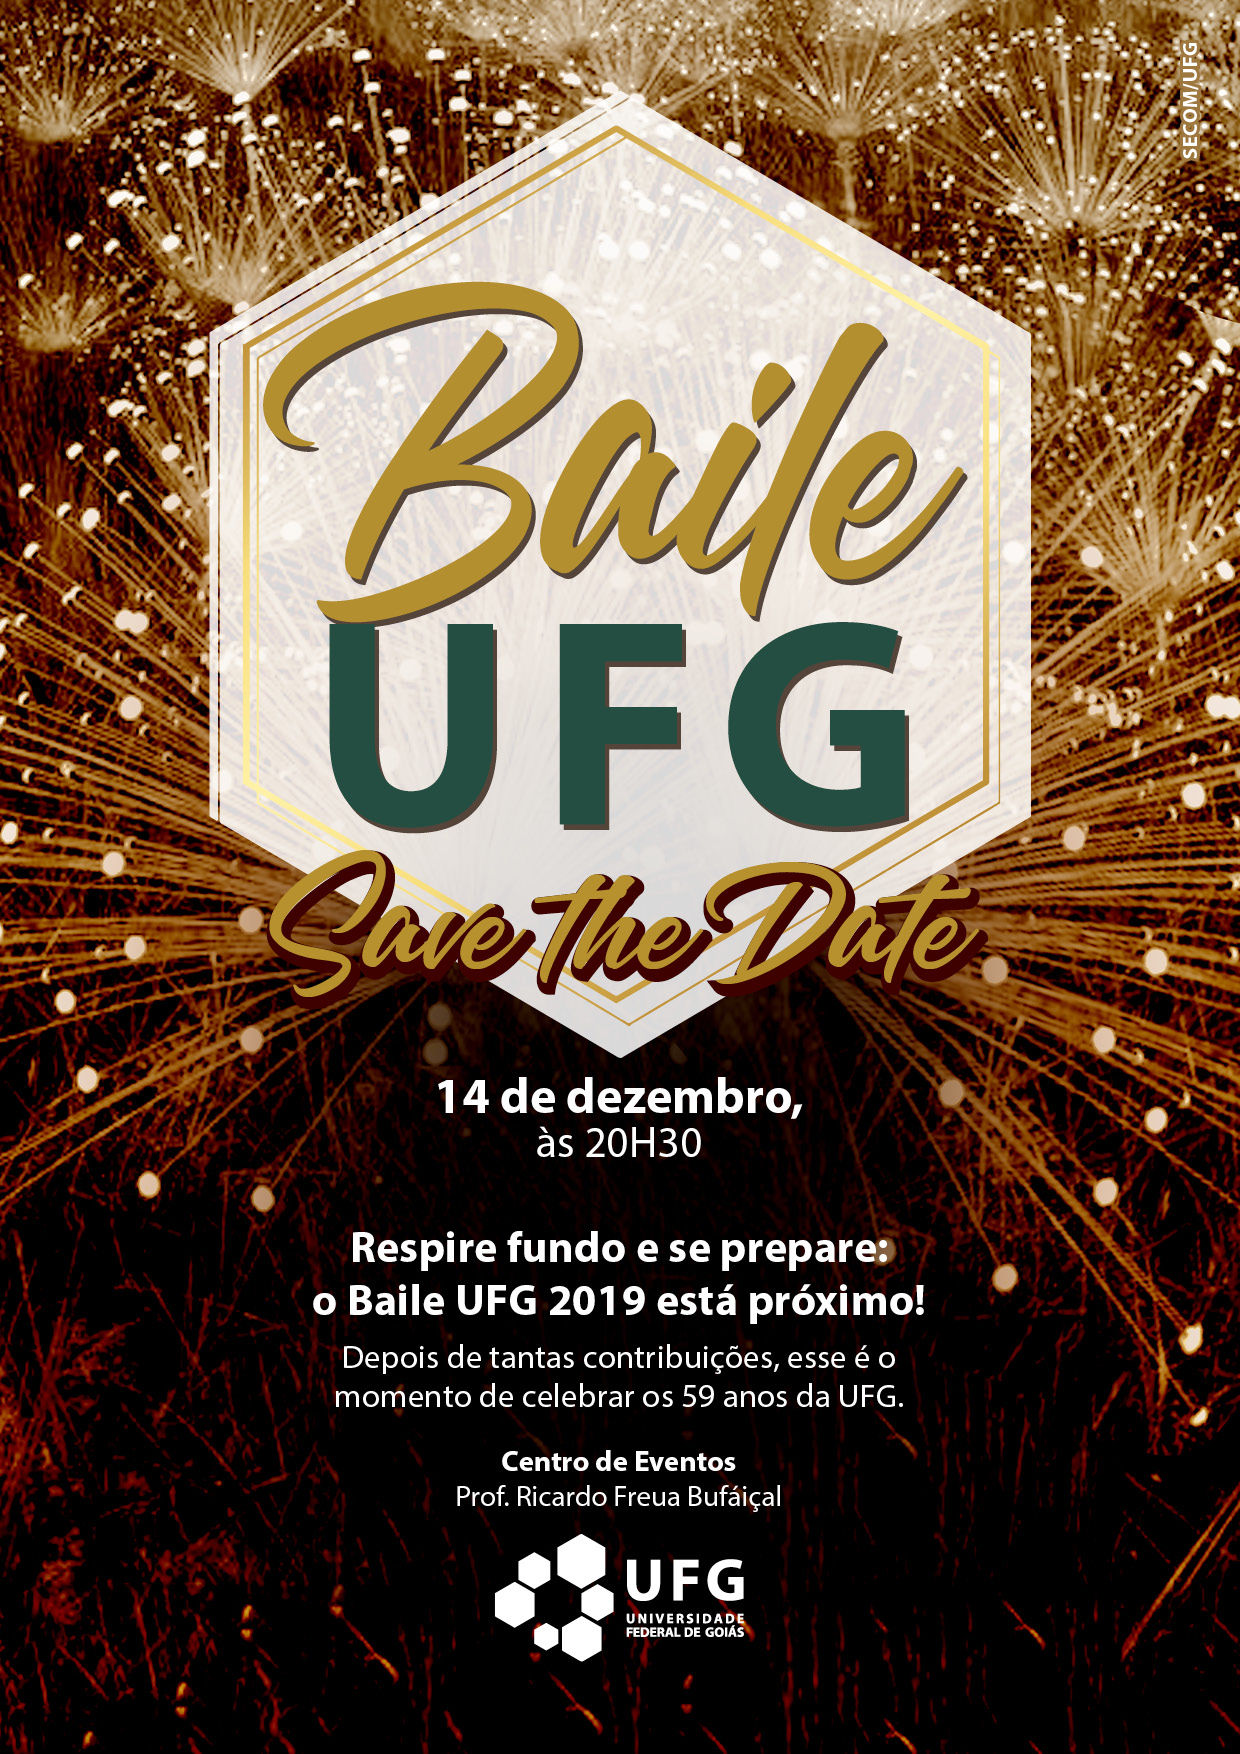 save-the-date_BAILE_UFG2019-A3.jpg